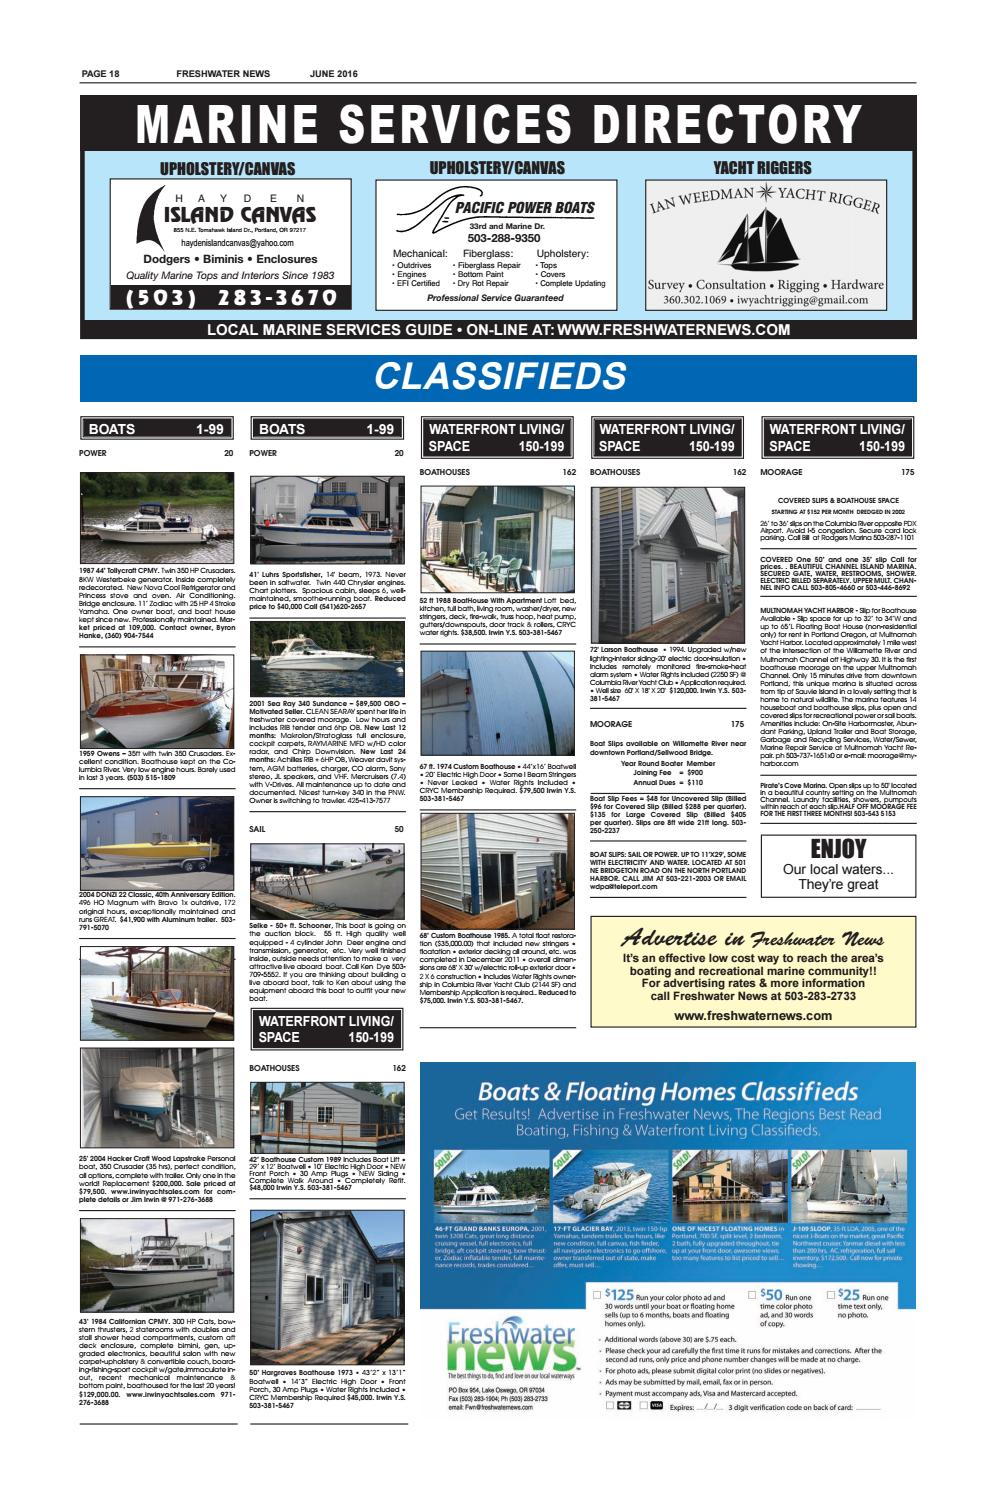 Freshwater News | June 2016 by Freshwater News - issuu